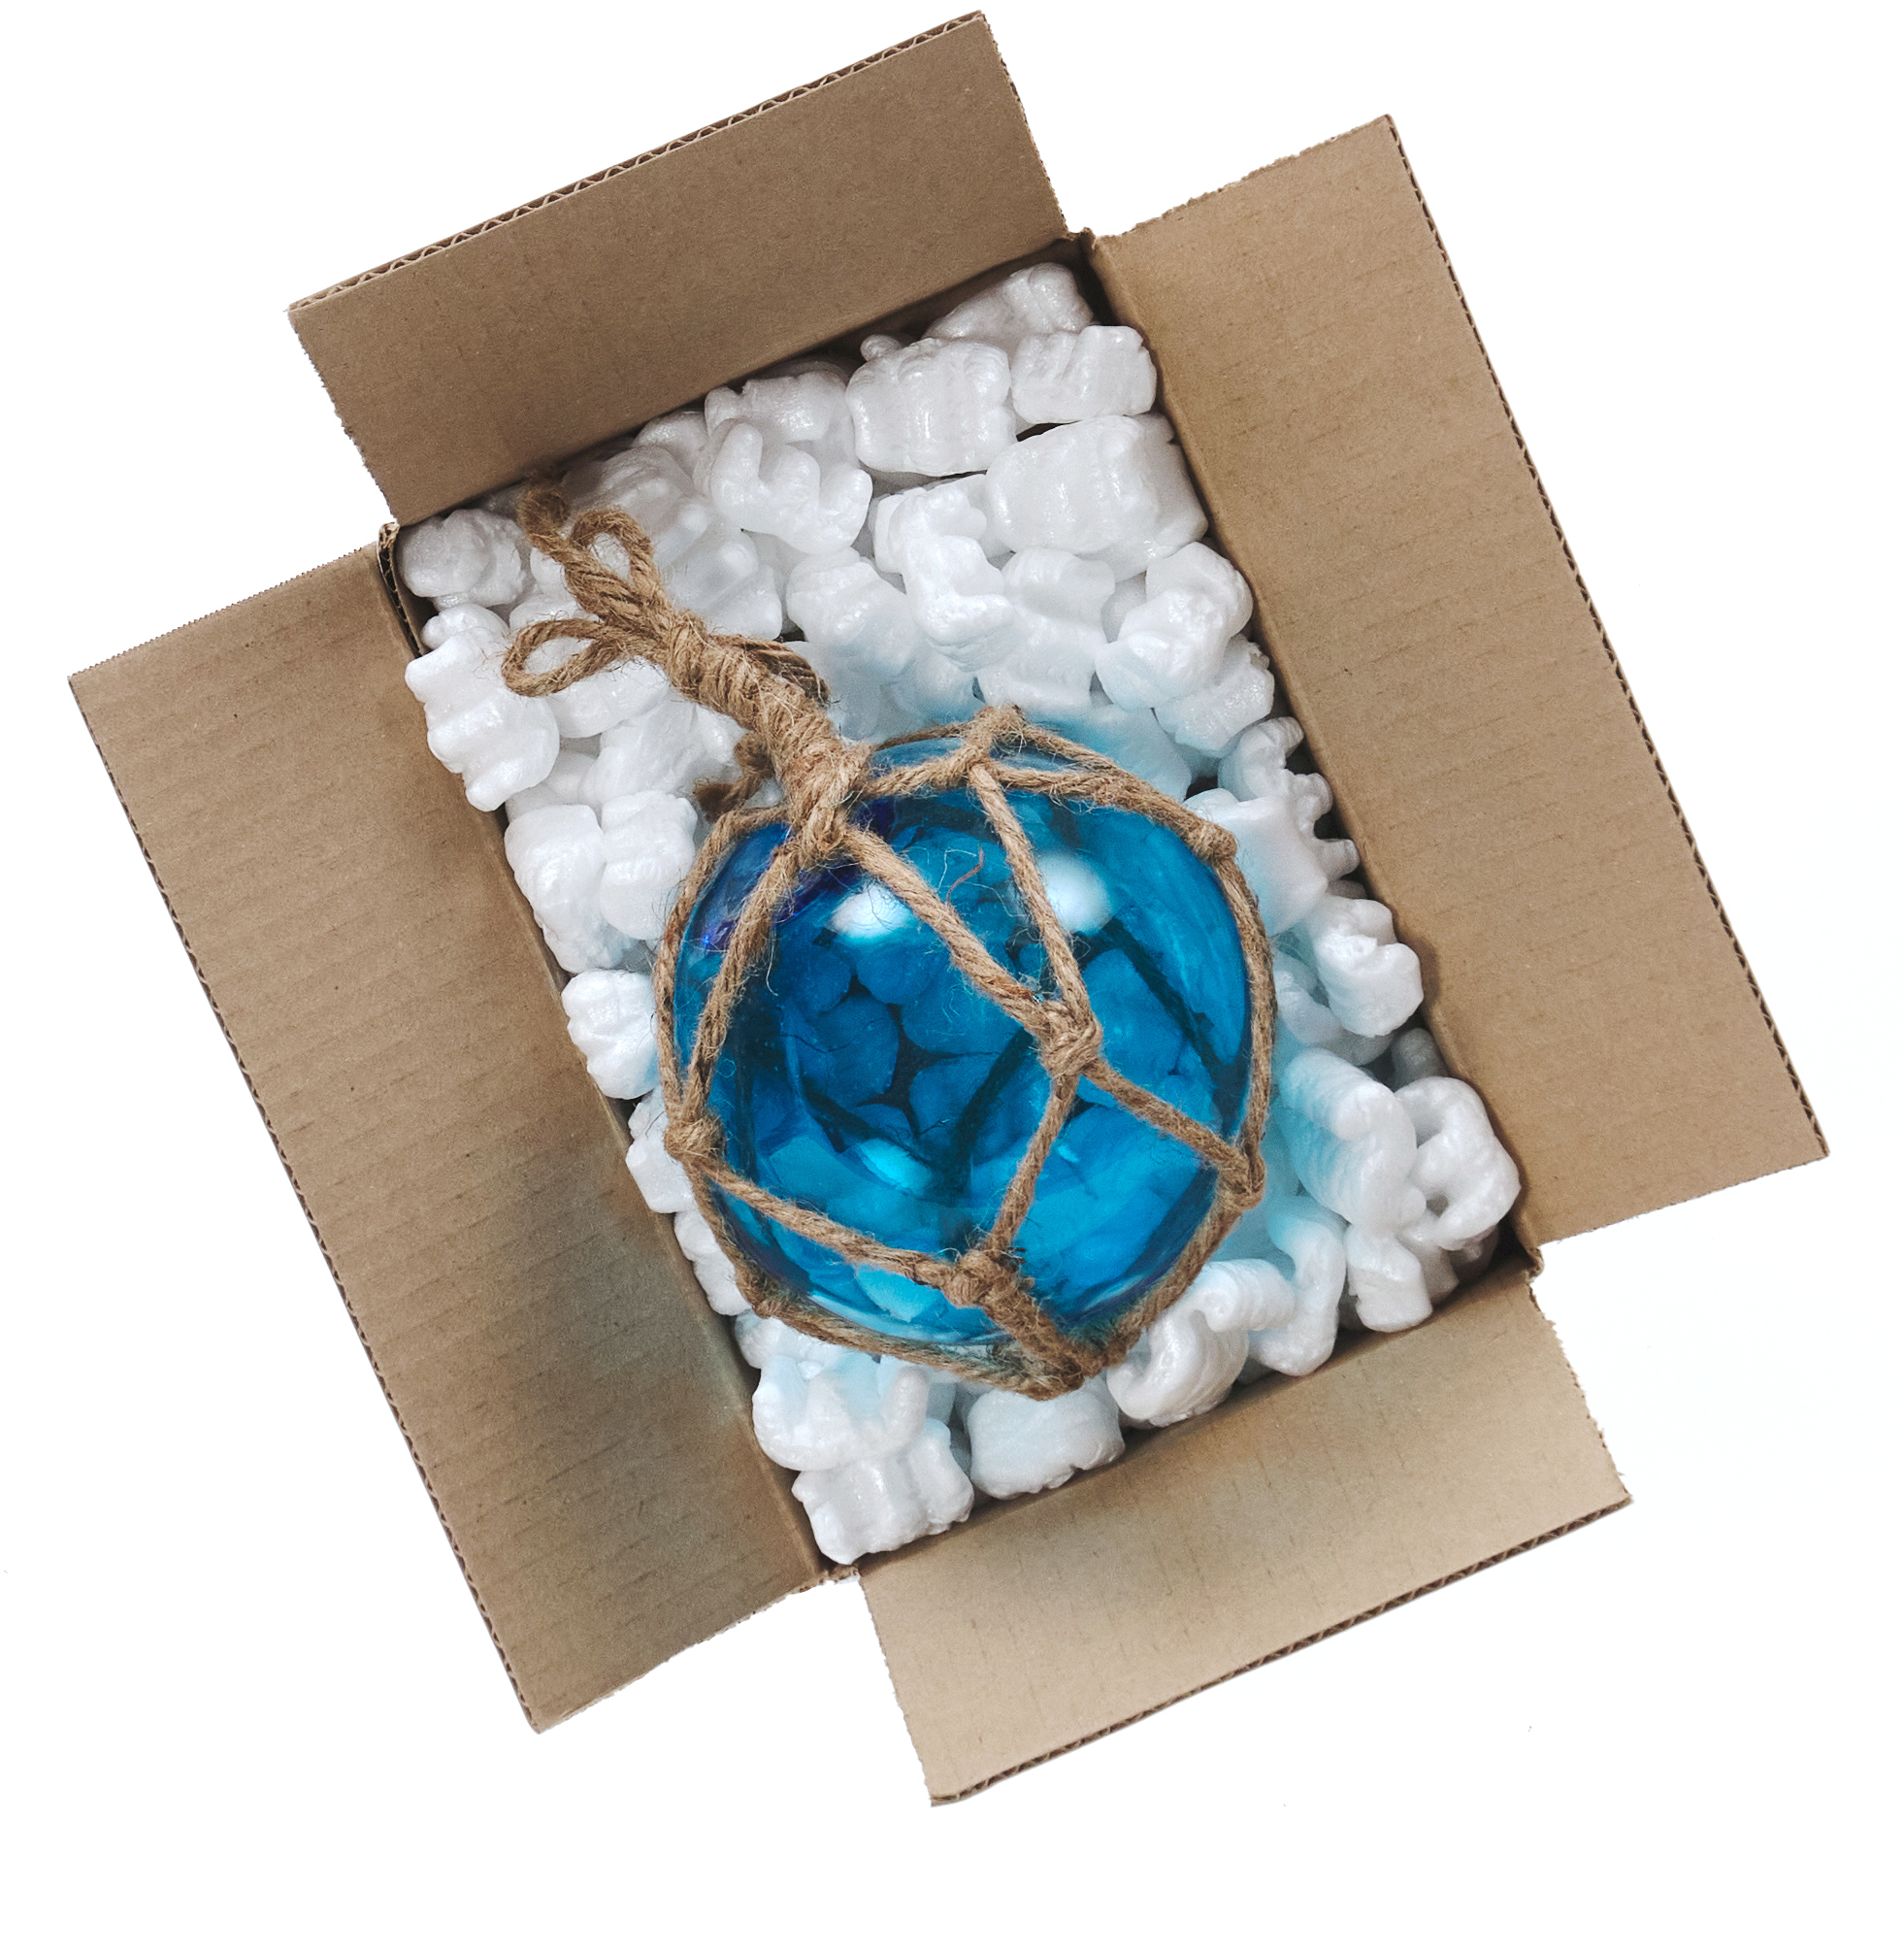 Blue buoy in a box